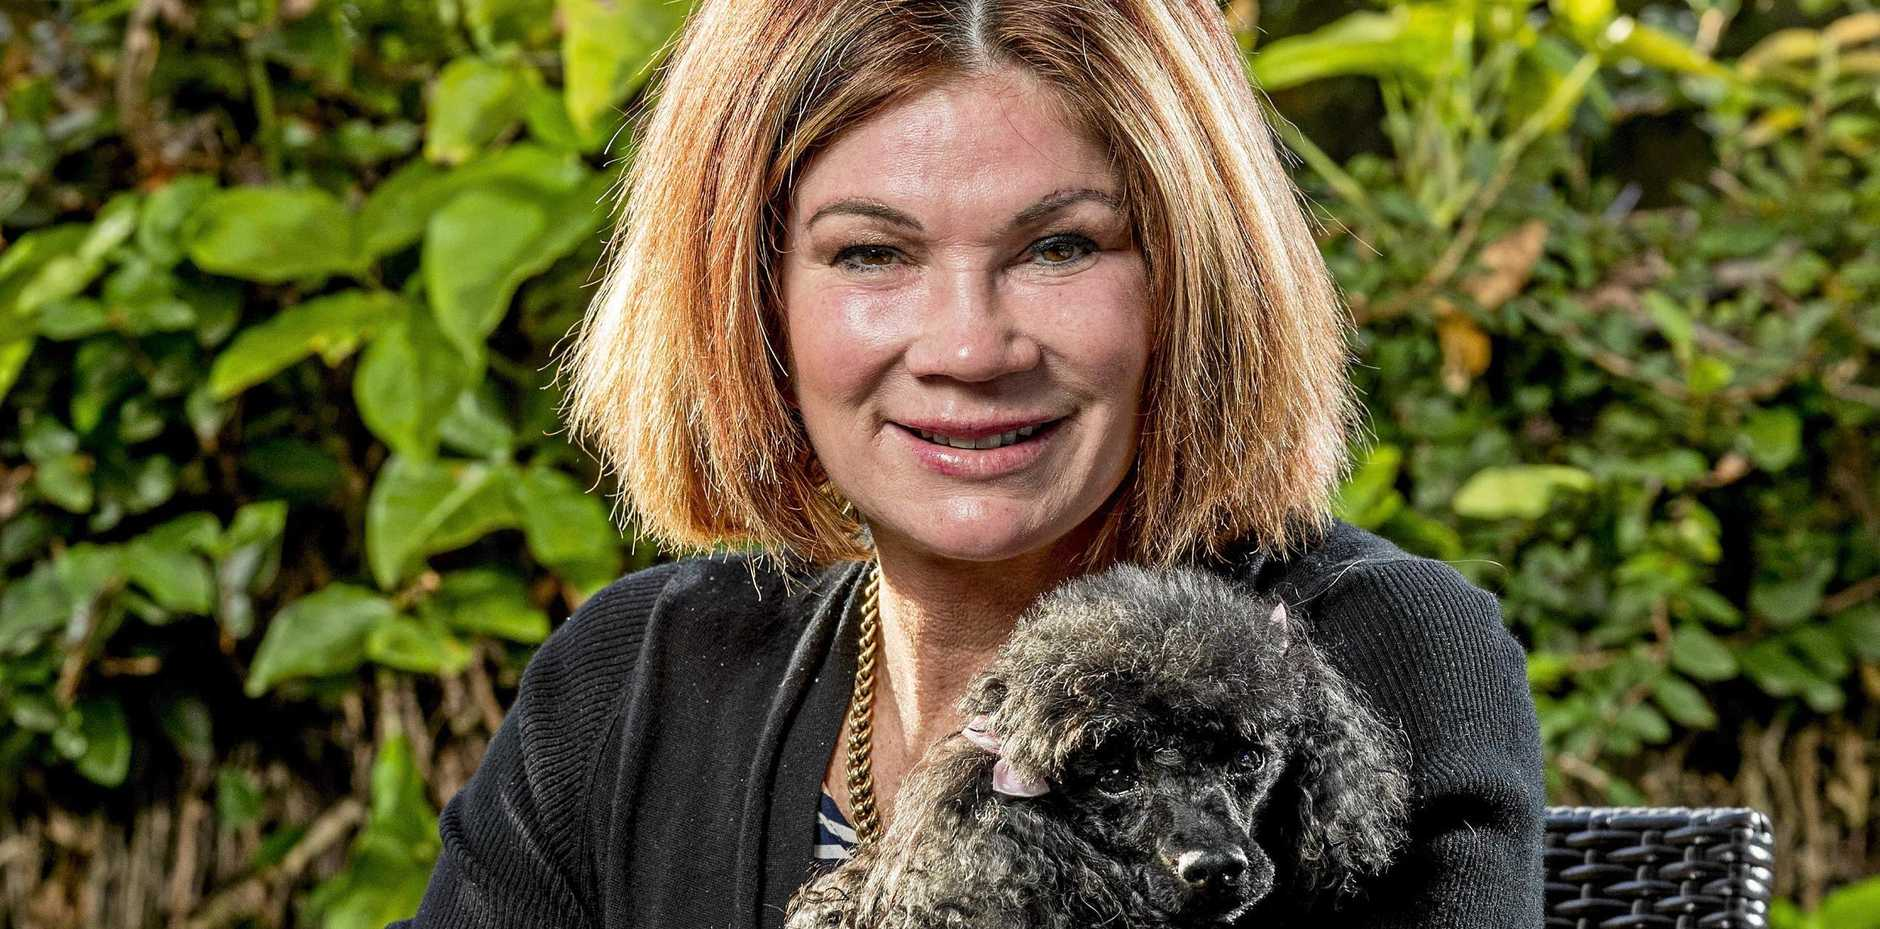 Tracey Wickham with her blind rescue dog Jemma, 12.